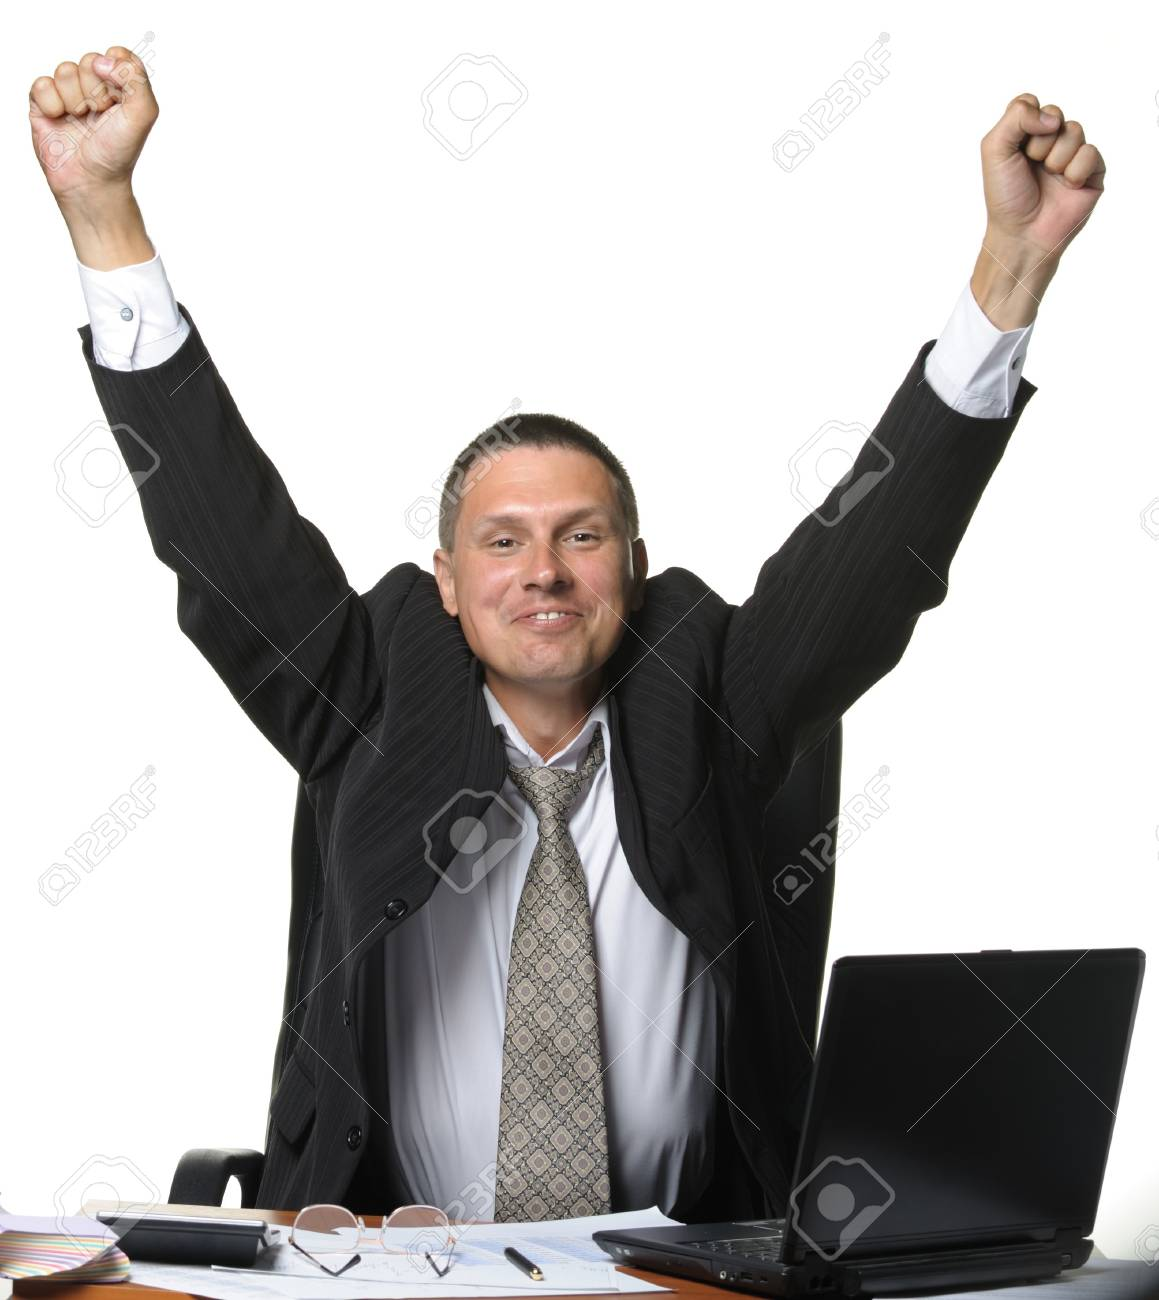 The businessman on a workplace. Concept of success. It is isolated on a white background Stock Photo - 7422590